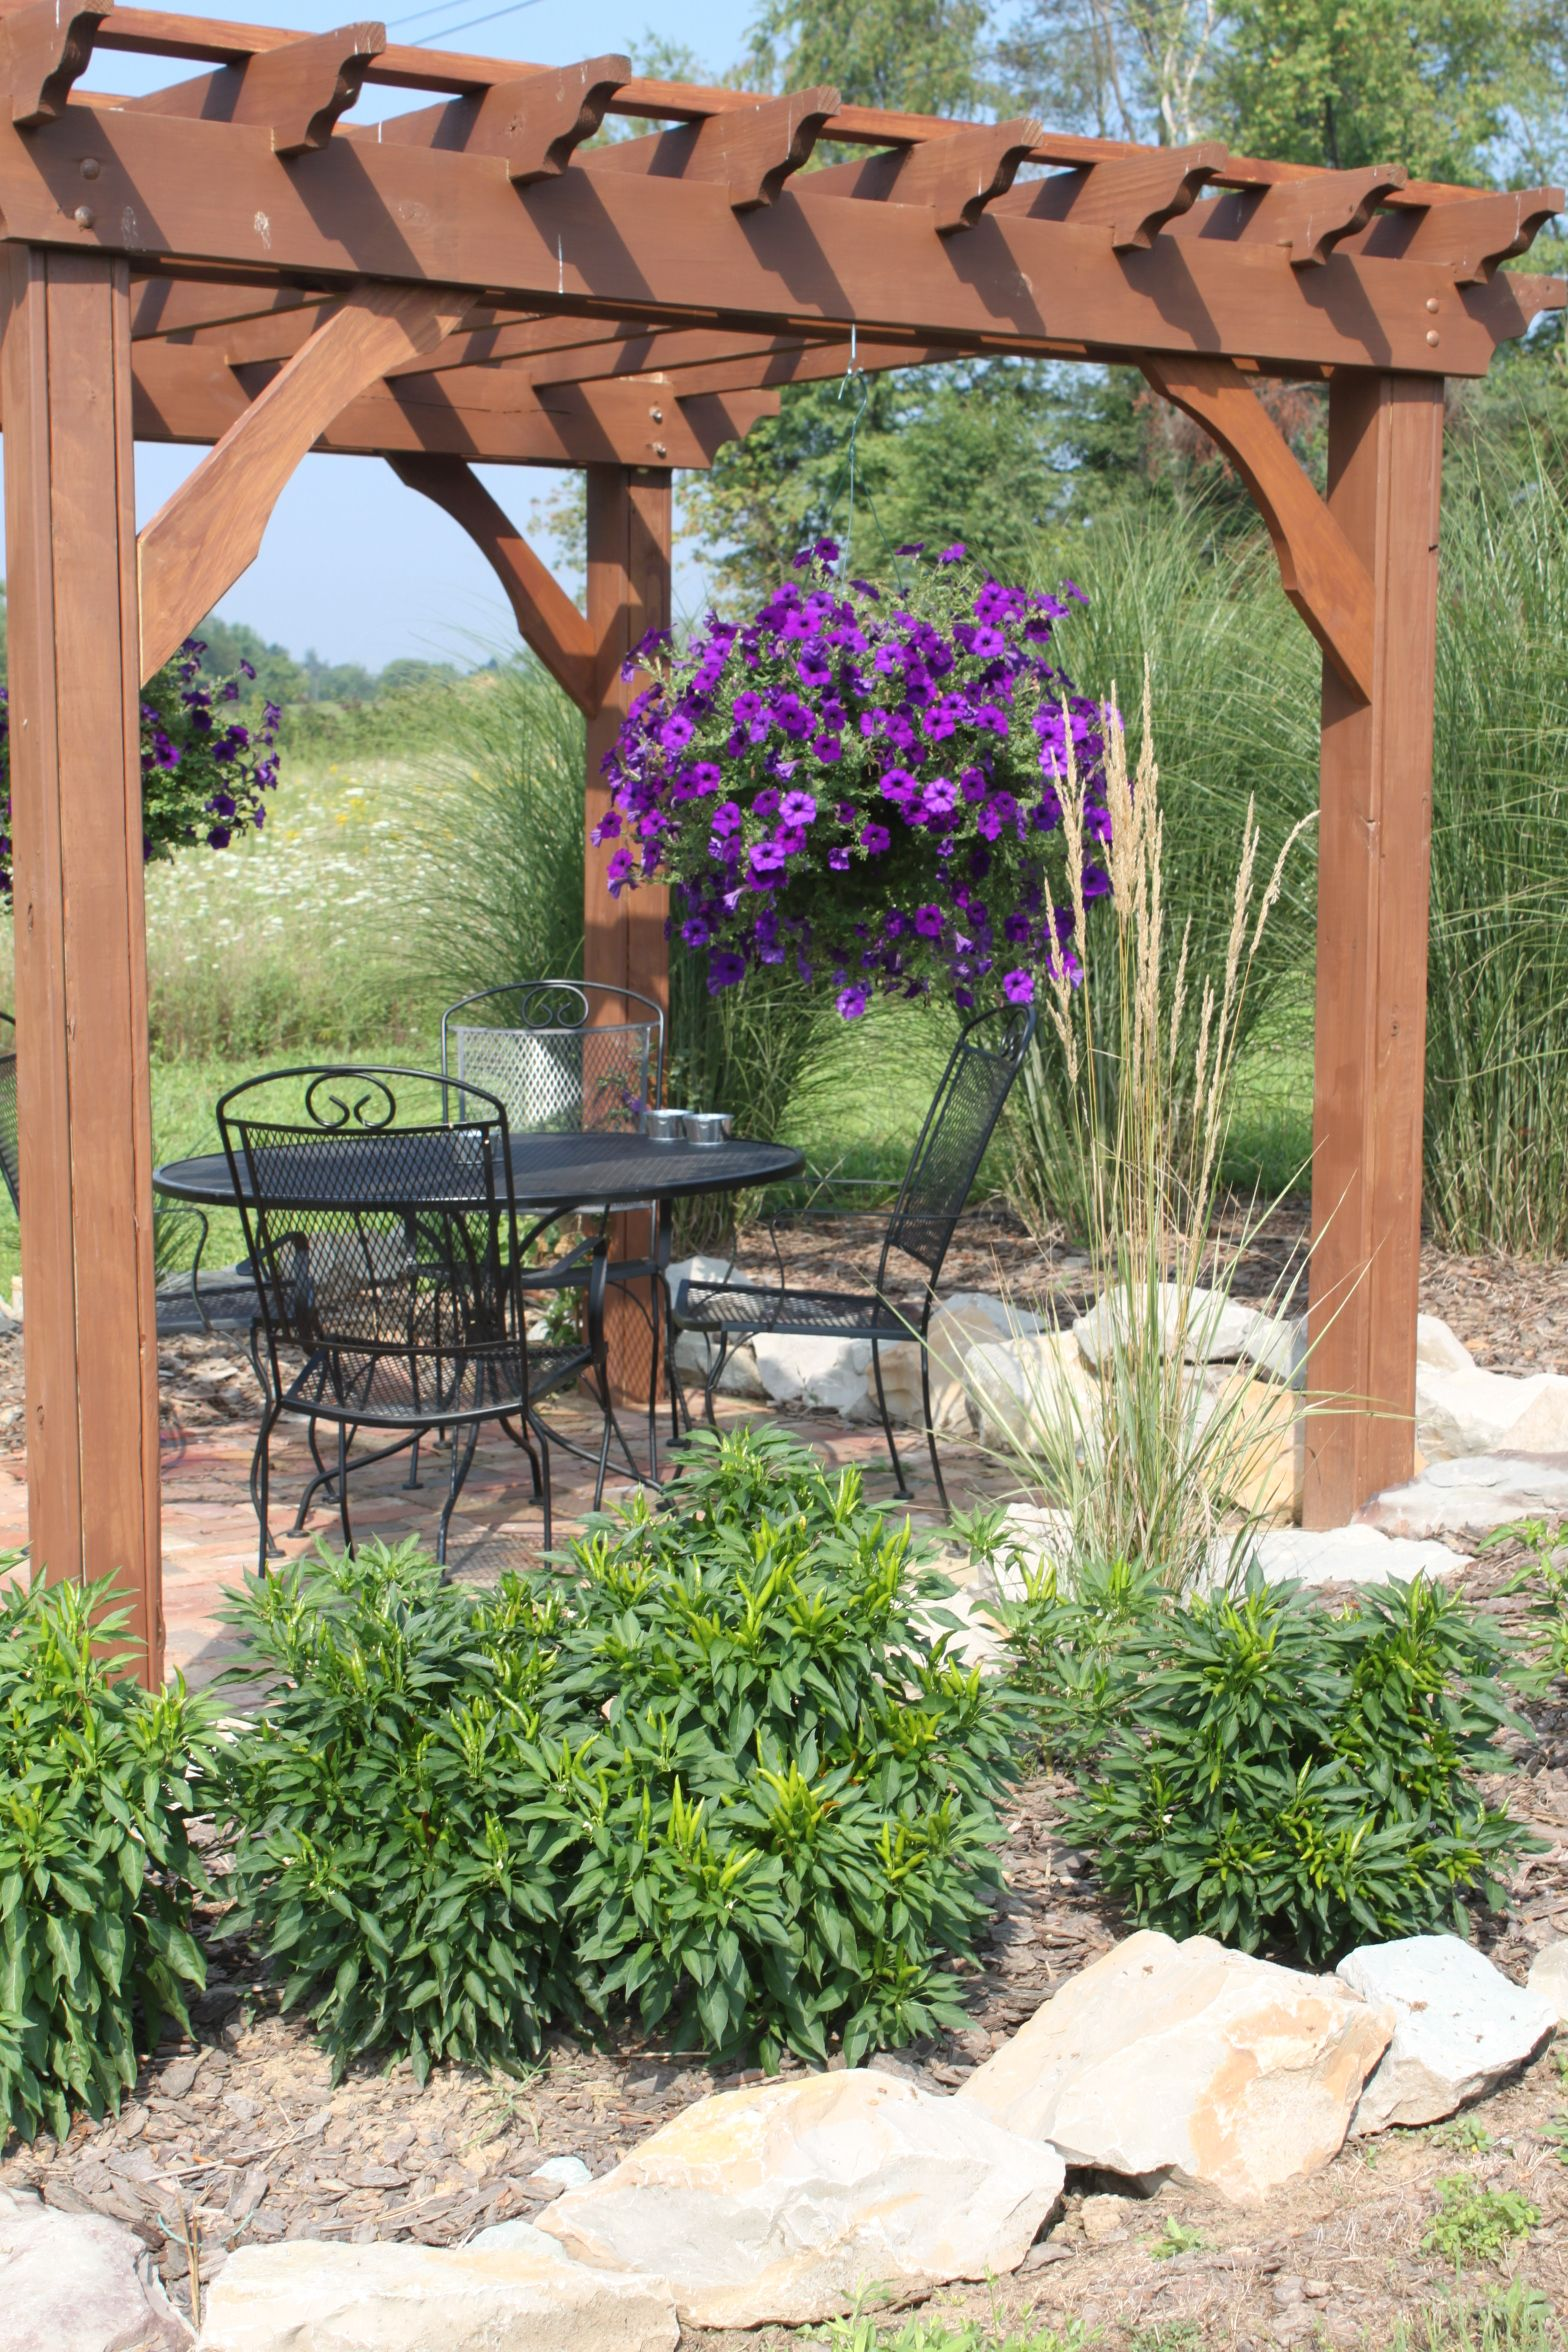 The upper pergola with hanging wave petunia's and poinsettia pepper plants  in the beds - The Farm And Garden In Pictures - August Edition Pergolas, Plants